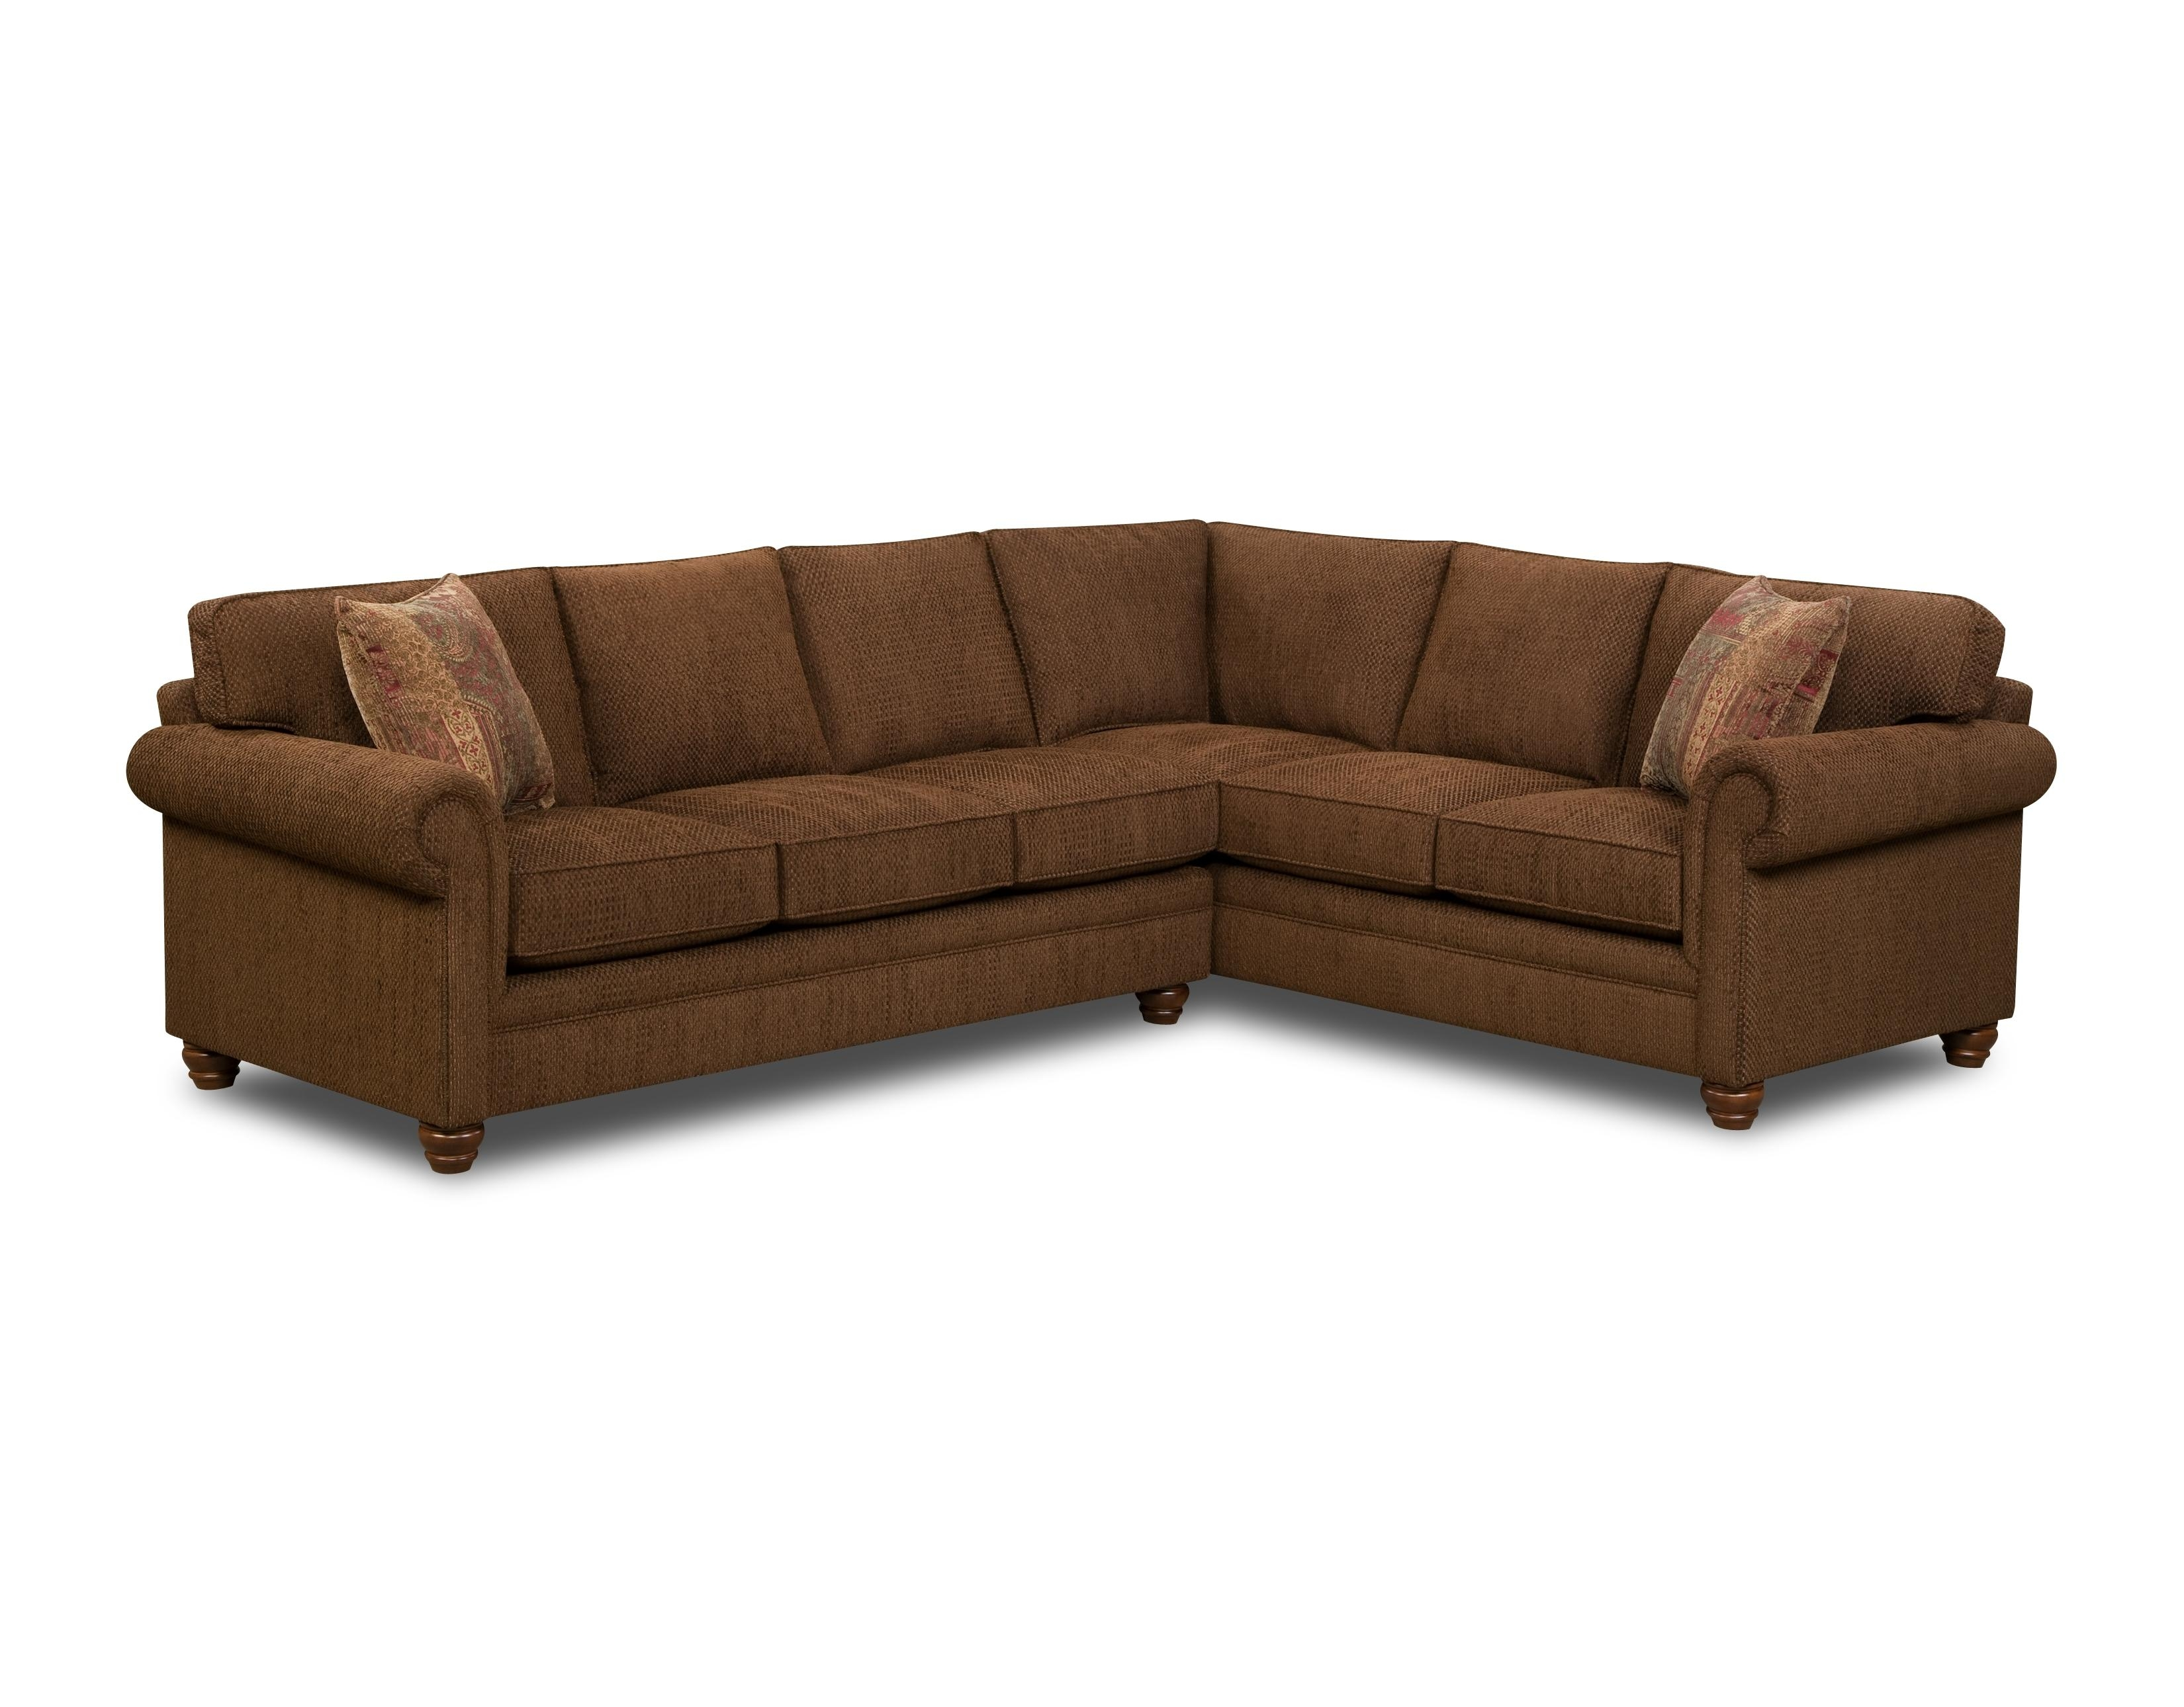 Bauhaus Sectionals Store Dealer Locator Throughout Bauhaus Sectional Sofas (#7 of 12)